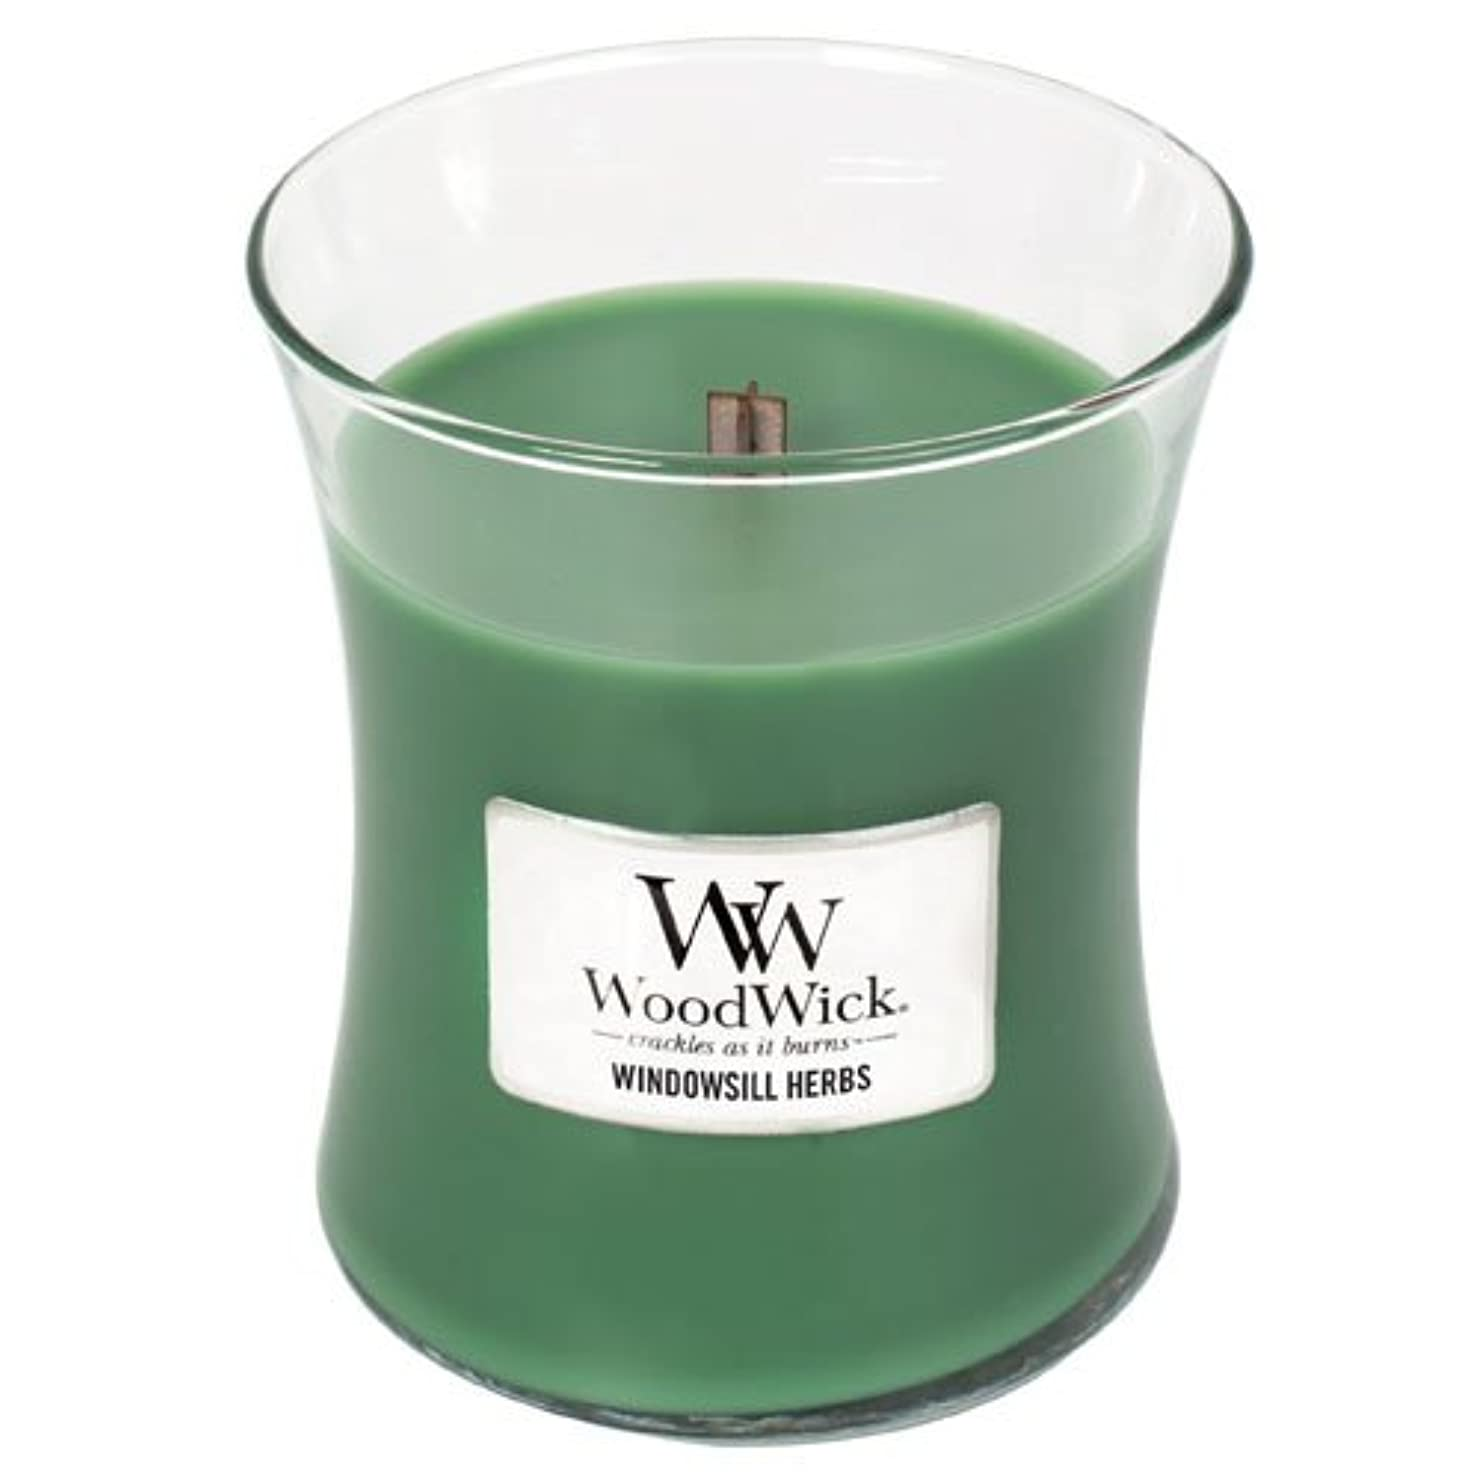 吸う音楽家ジュニアYankee Candle Windowsill Herbs Medium Hourglass Candles with Pluswick イエロー 92047